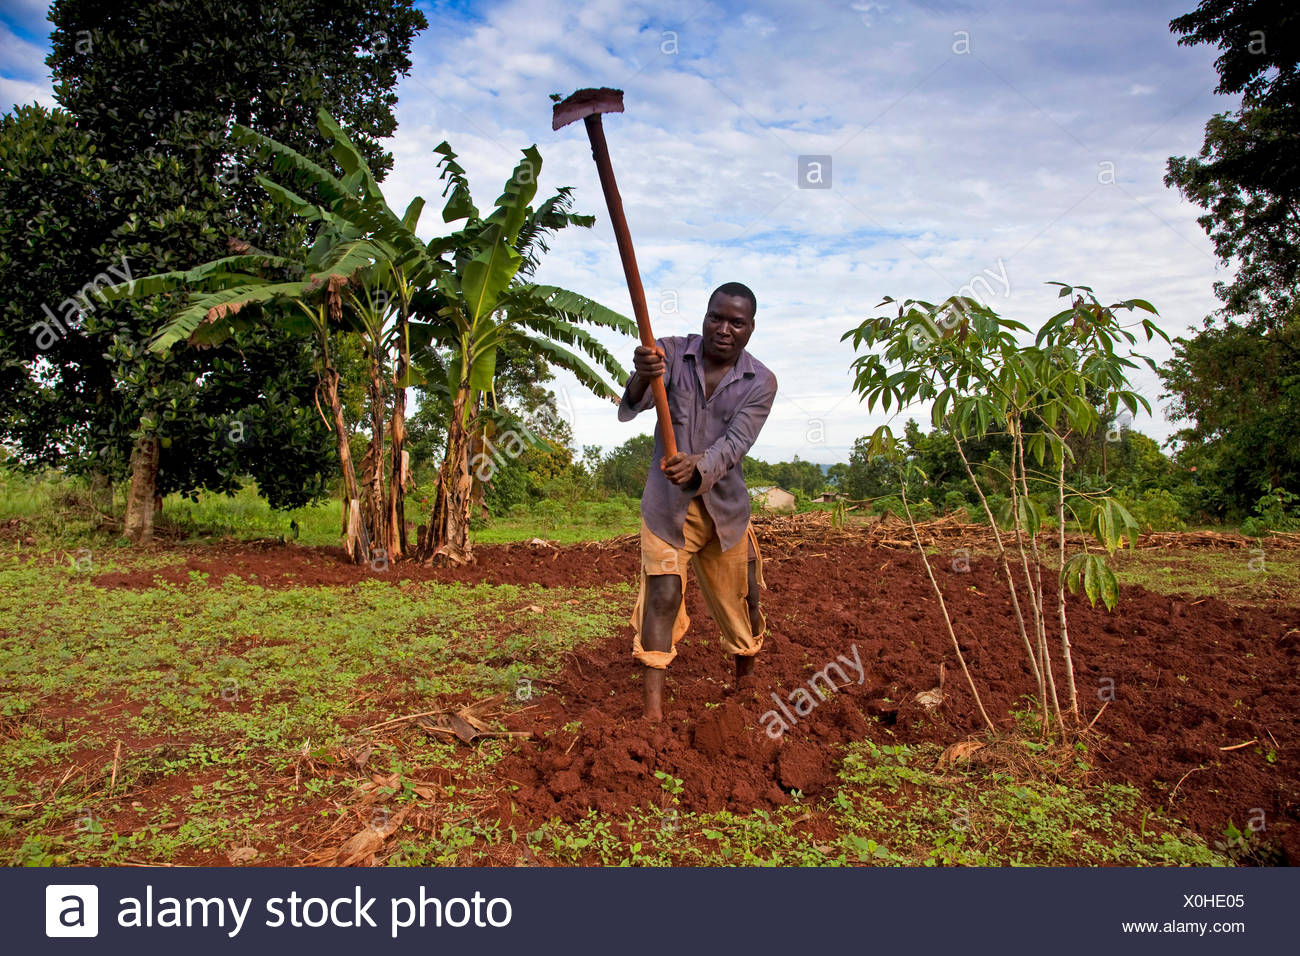 farmer is working on his fertile field with a hatchet, coffee plant in the left hand foreground, banana plant in the right hand background, Uganda, Jinja - Stock Image